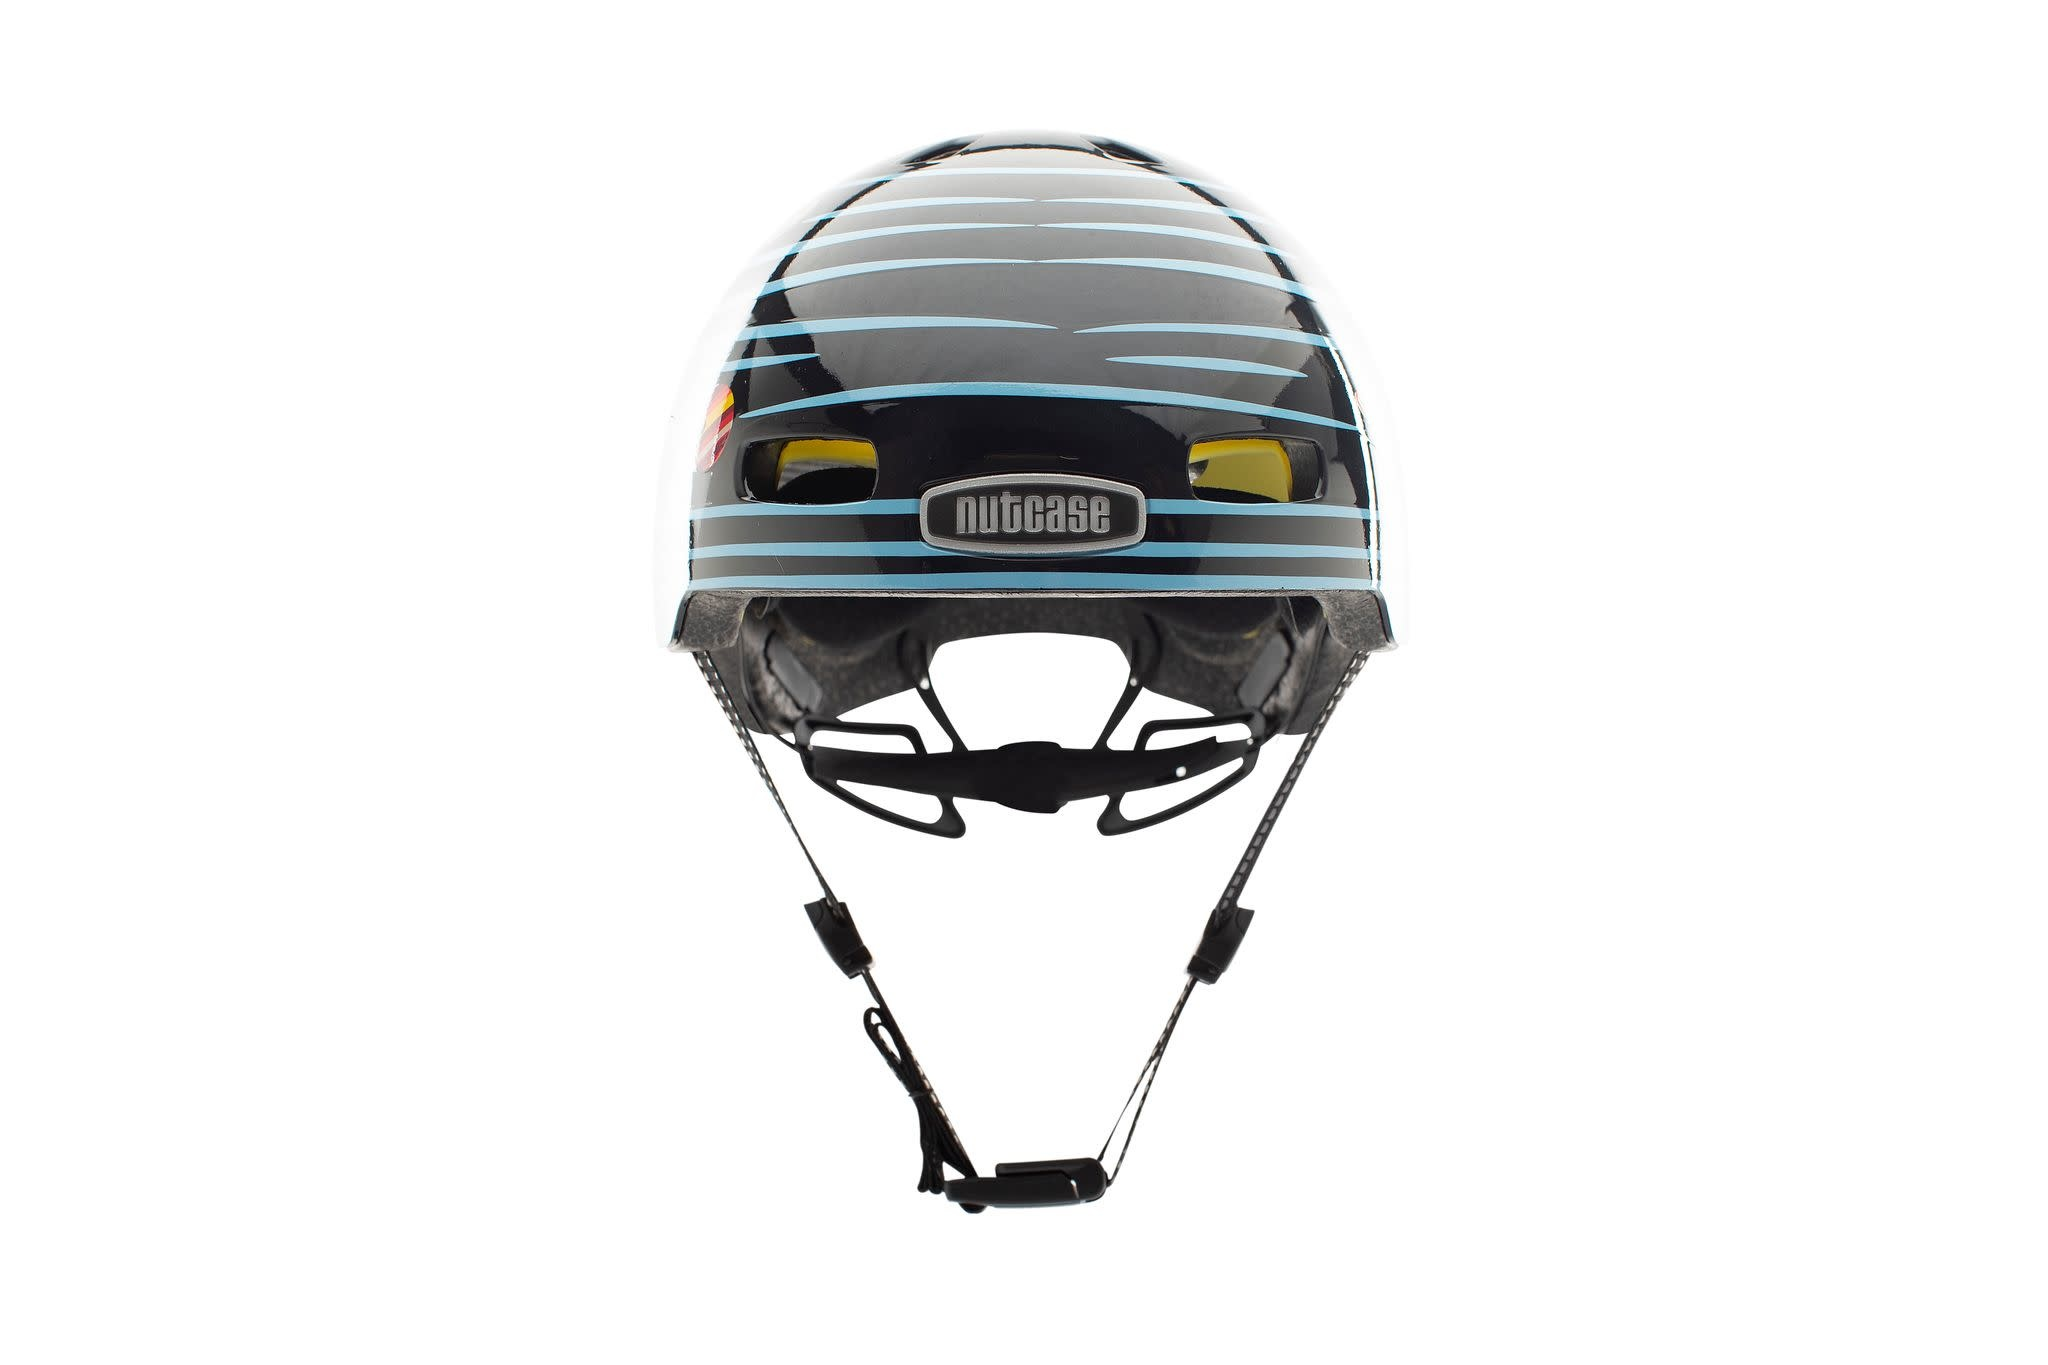 Nutcase Little Nutty Defy Gravity Reflective gloss MIPS helmet XS (48 - 52 cm)